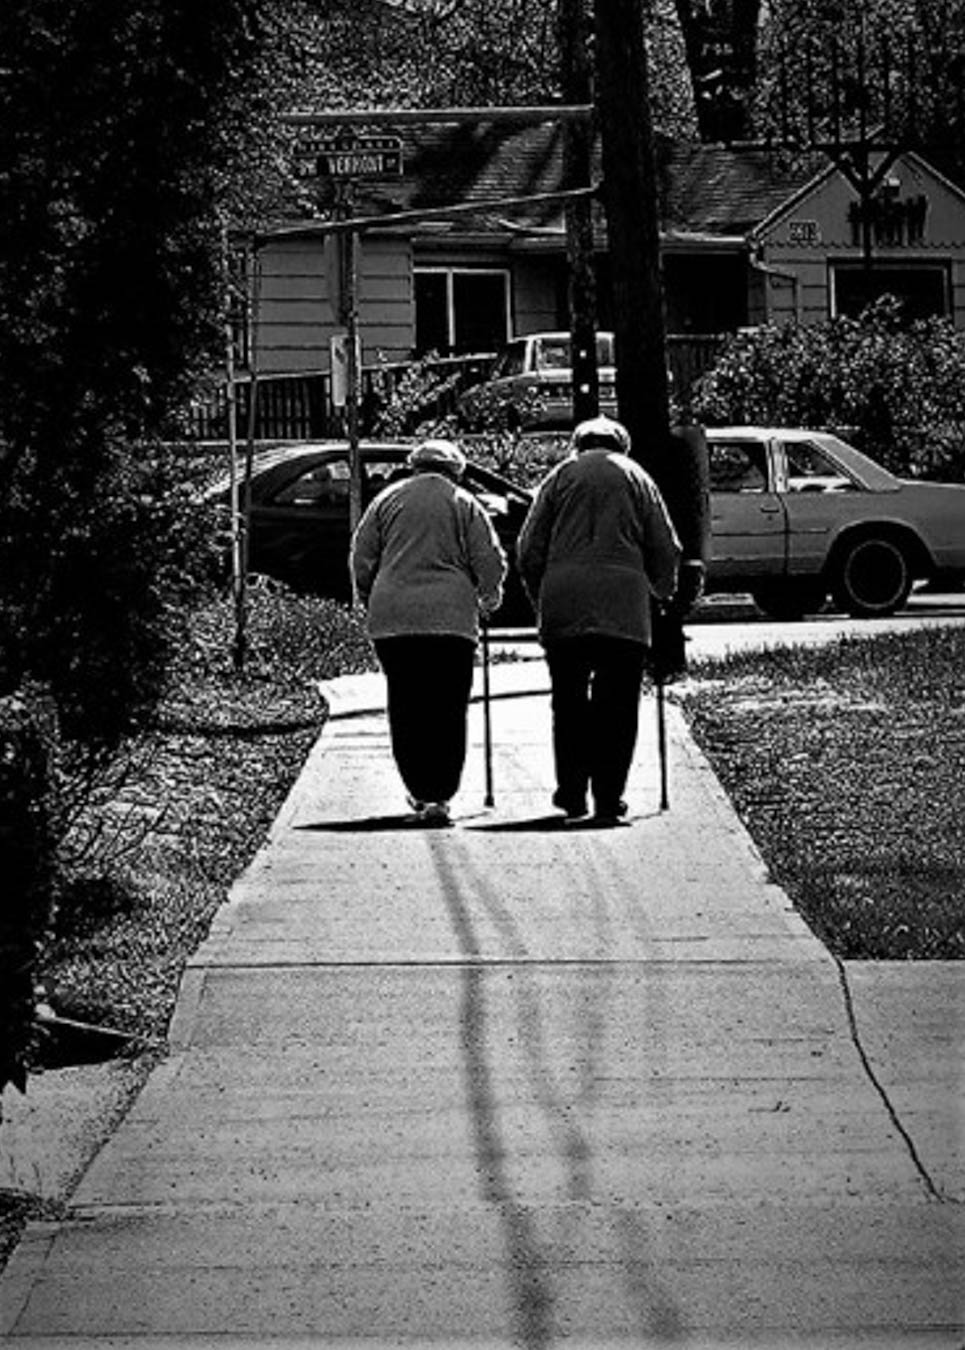 Black and white image of two elderly women walking together.